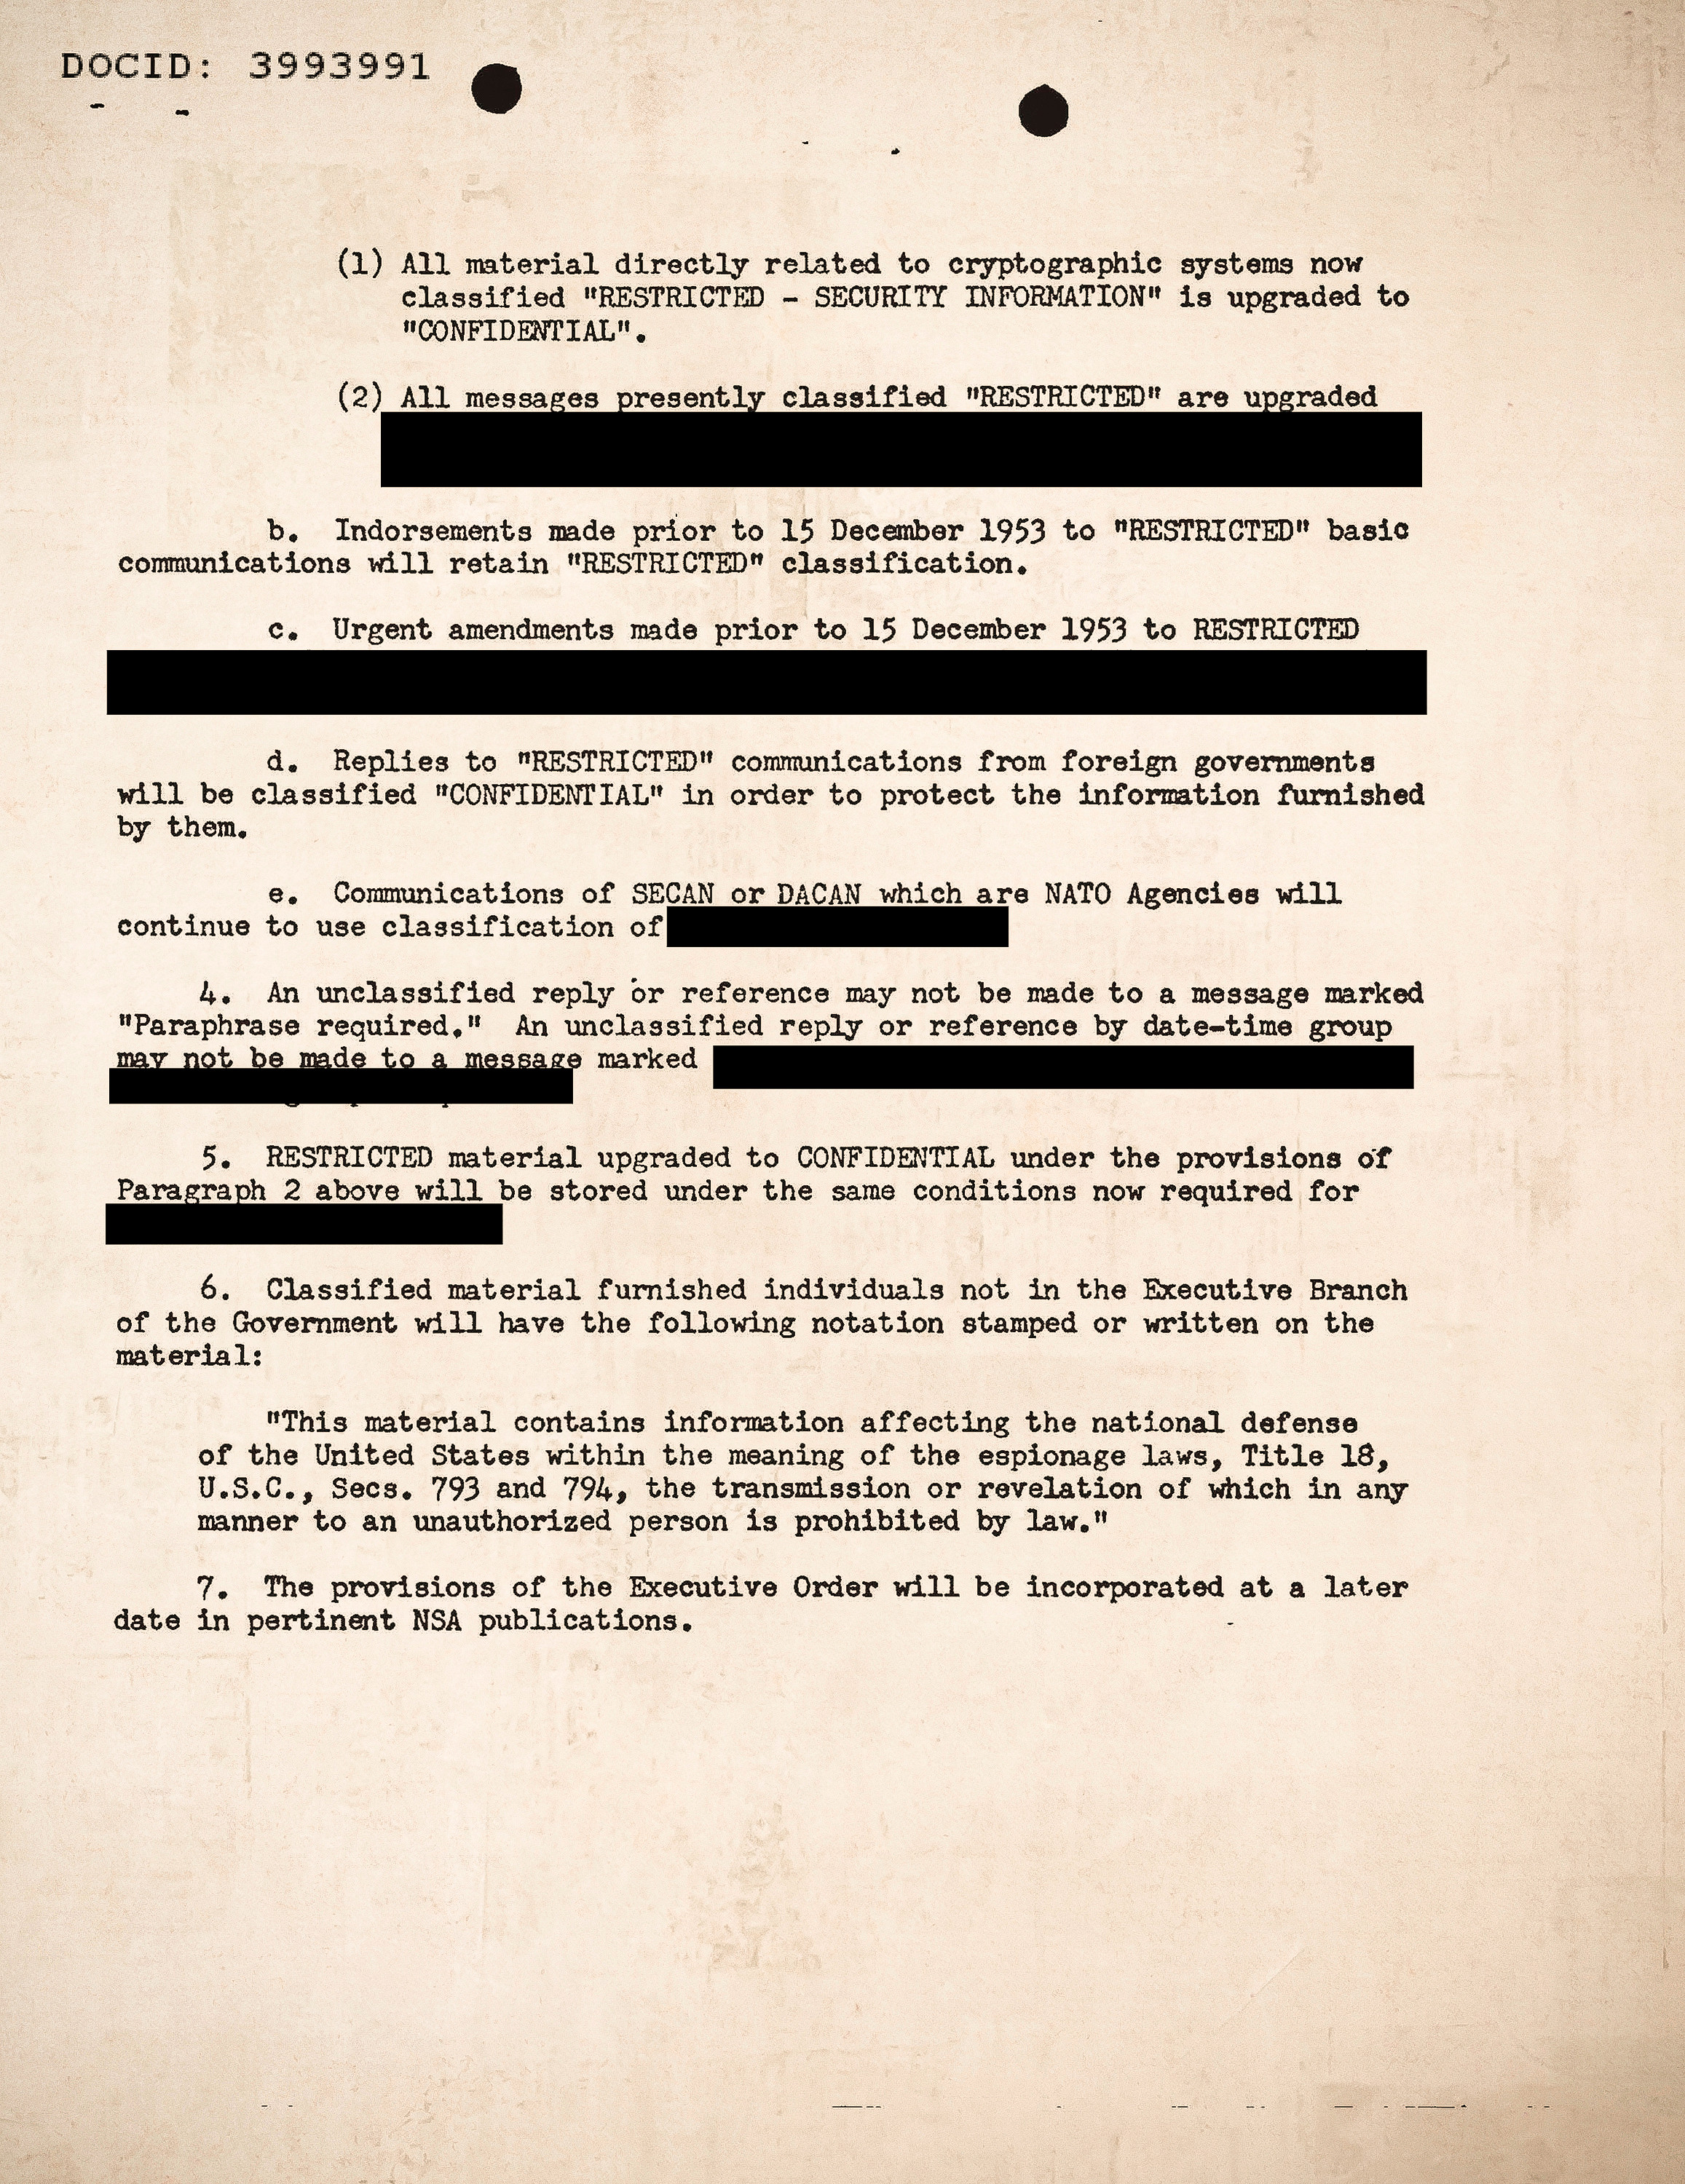 A page from declassified initial document.